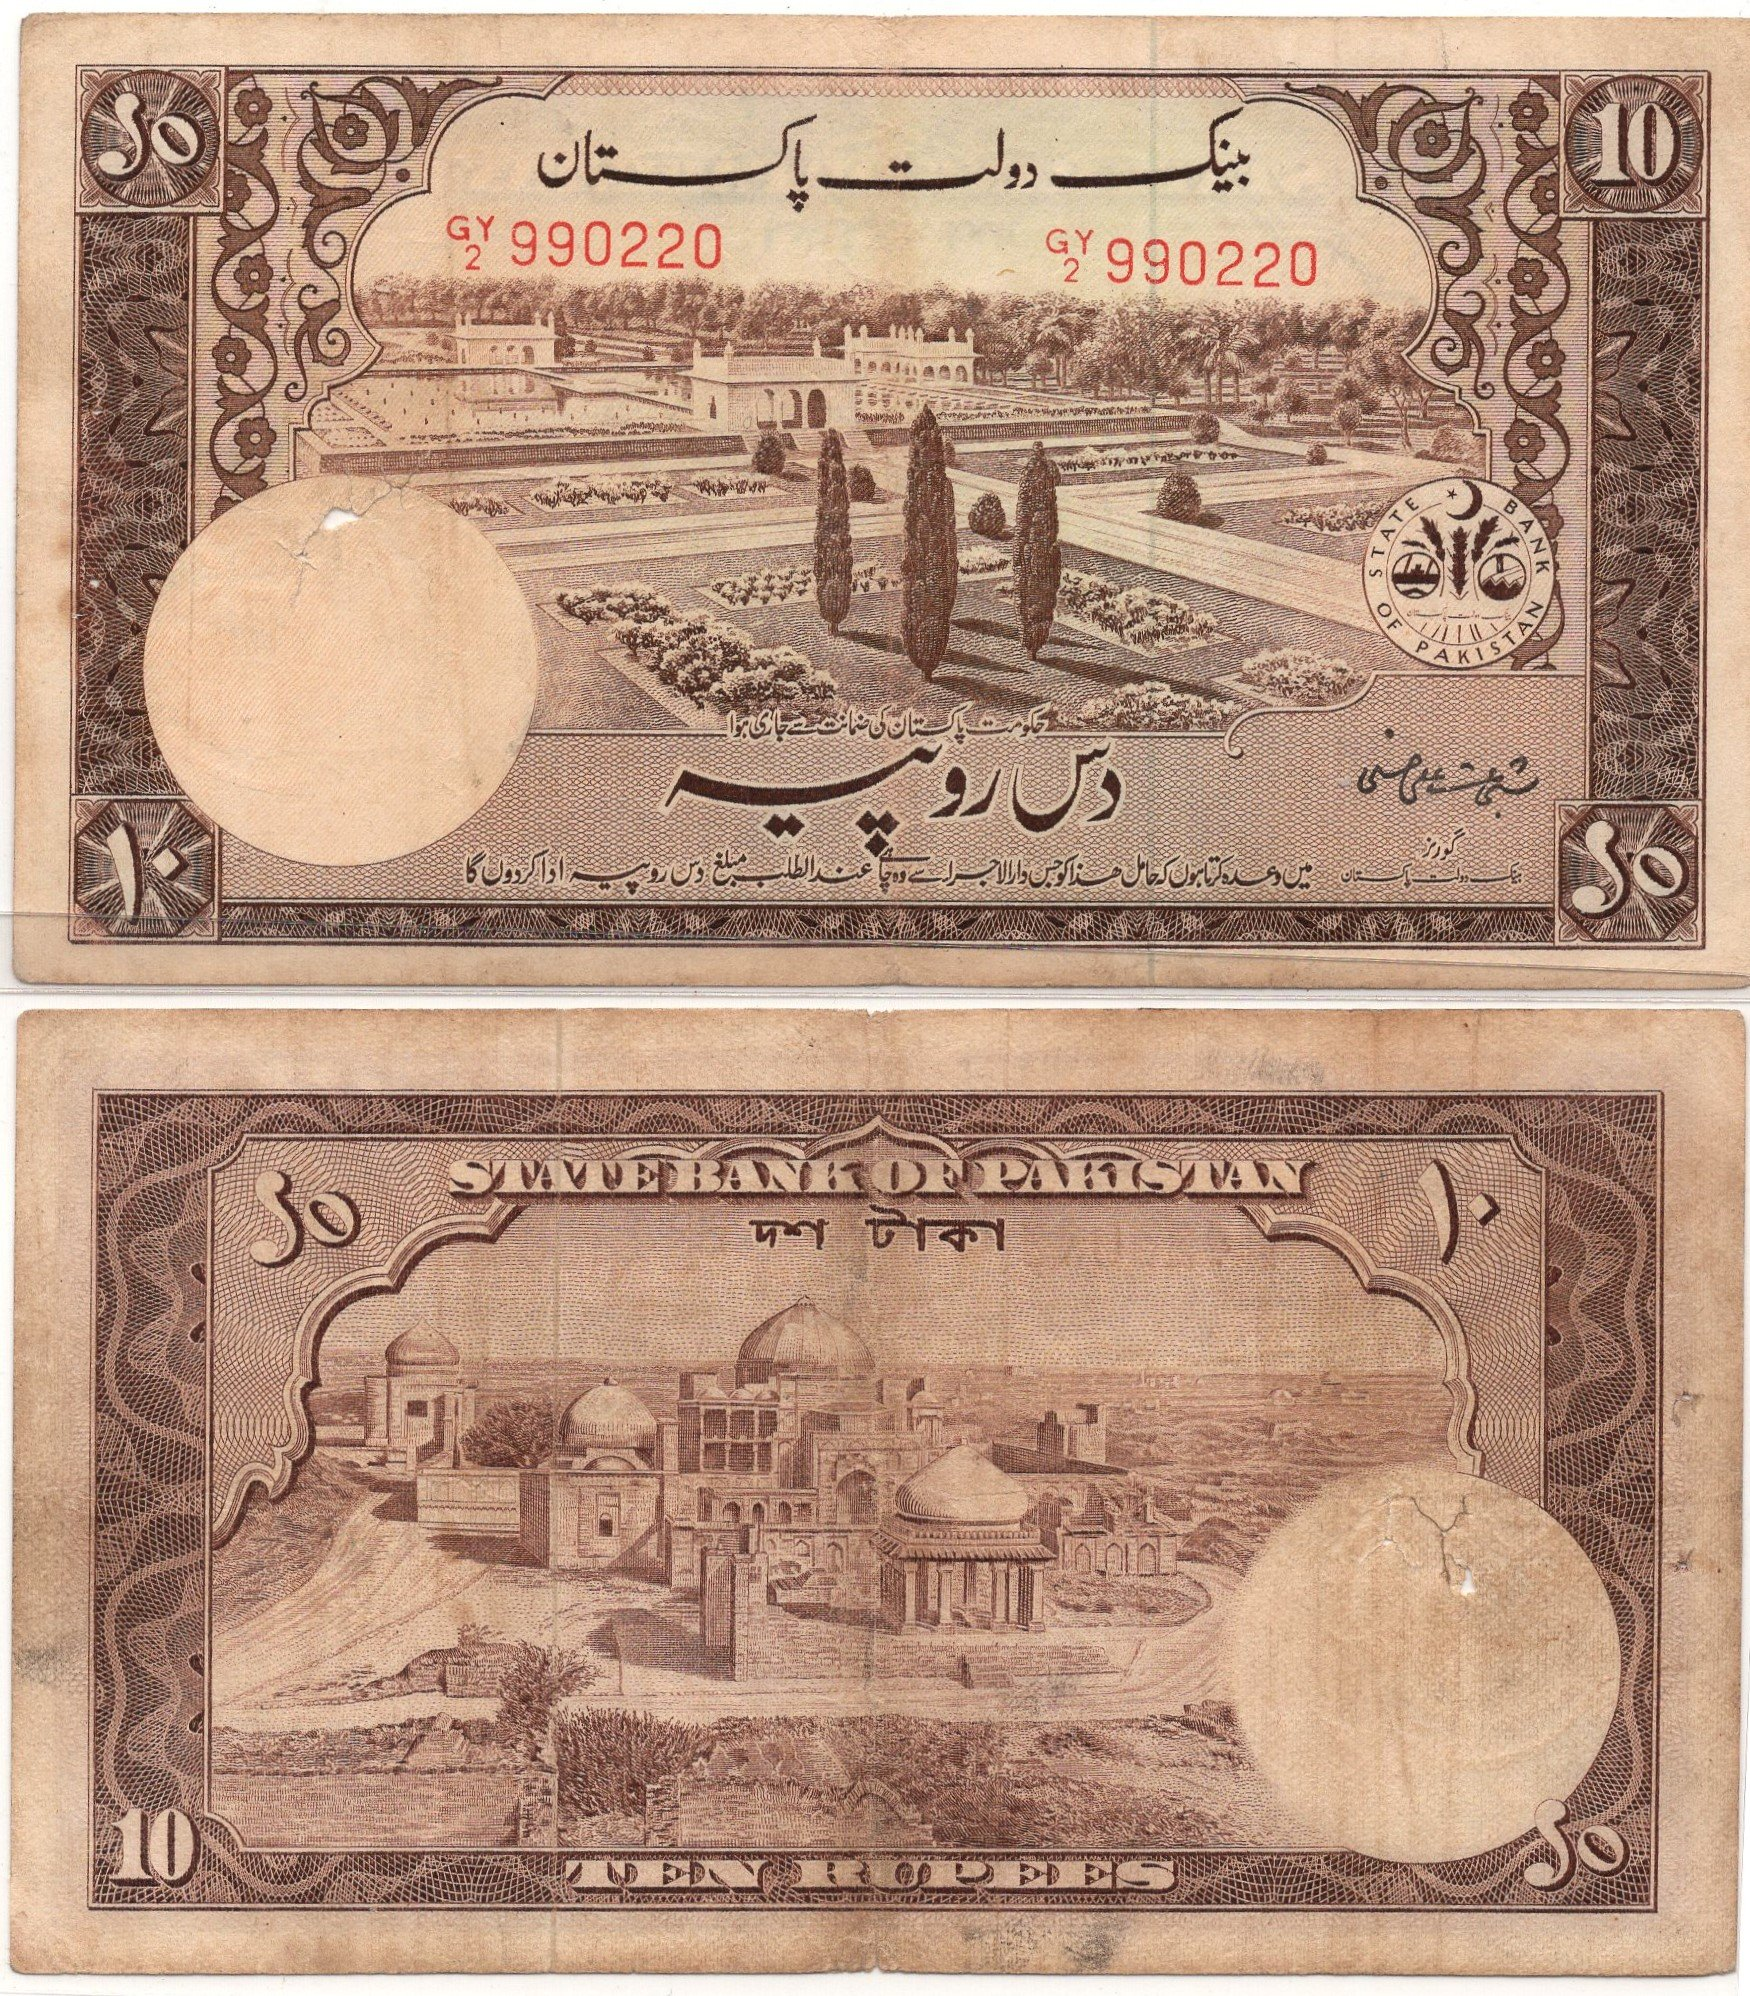 Pakistan 10 rupees 1953 banknote for sale